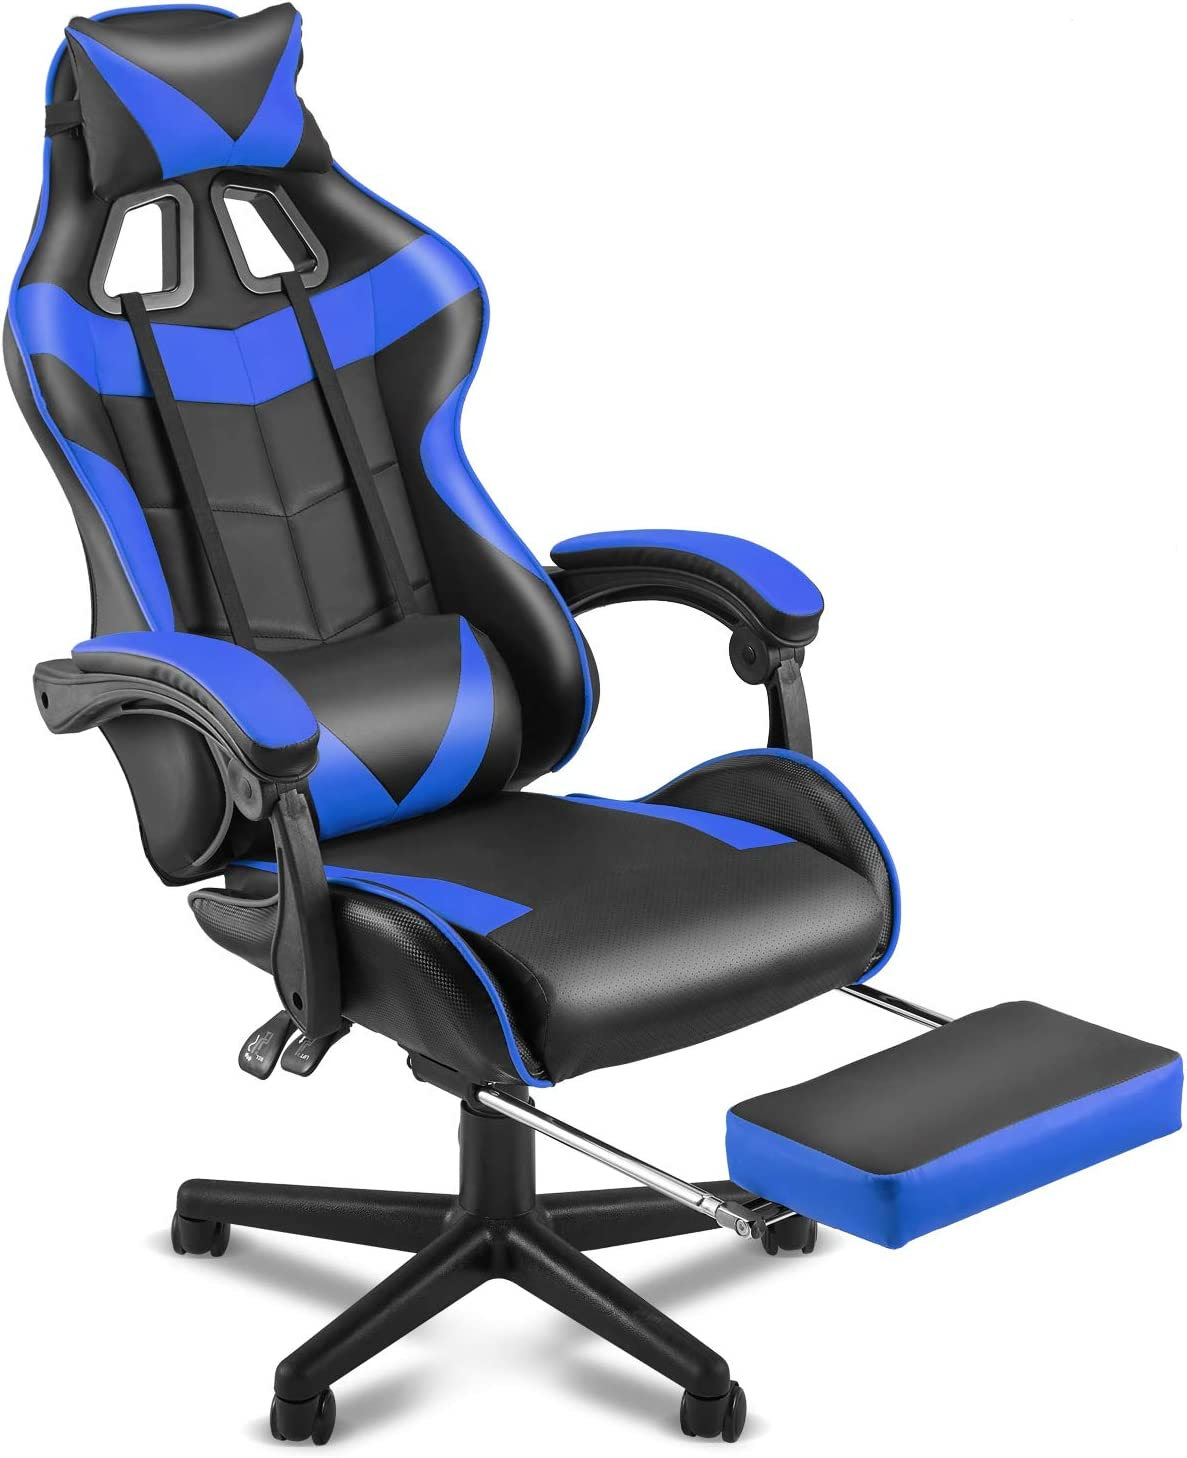 SOONTRANS Racing Style PC Computer Chair,Gaming Chair, E-Sports Chair,Ergonomic Office Chair with Height Adjustment,Retractable Footrest,Headrest and Lumbar Support(Storm Blue)